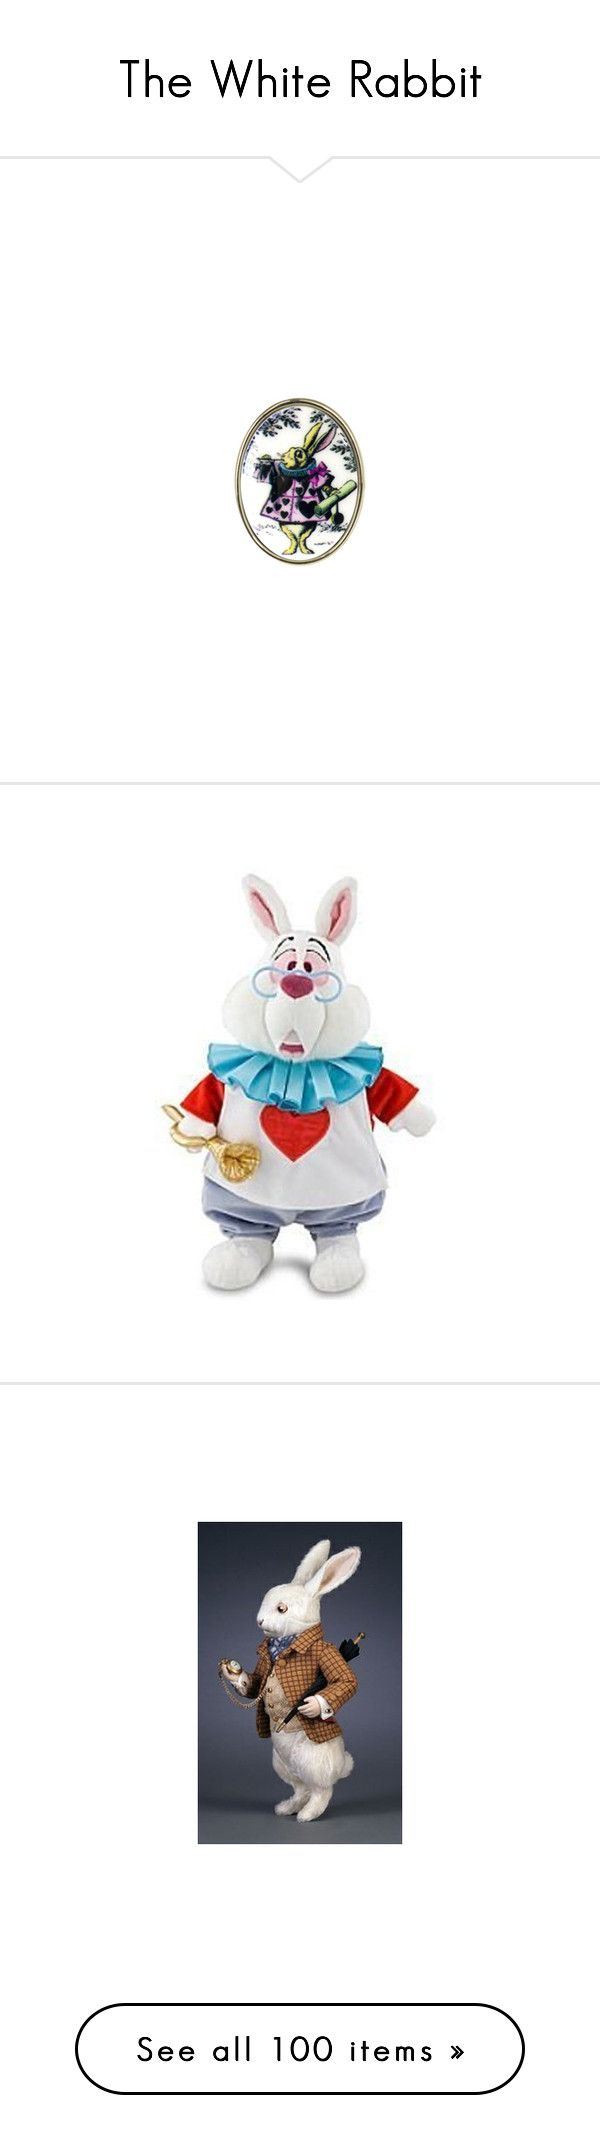 The White Rabbit by shannen-legere-lavigne on Polyvore featuring polyvore, fashion, jewelry, rings, alice in wonderland, accessories, tarina tarantino, tarina tarantino jewelry, tarina tarantino ring, clothing, costumes, masks, white rabbit halloween costume, white halloween costumes, rabbit halloween costume, rabbit costume, white costume, steam punk, extras, mask, wonderland, hats, beanie, animal beanie, rabbit fur hat, white rabbit hat, white hat, bunny hat, filler, random, animals…